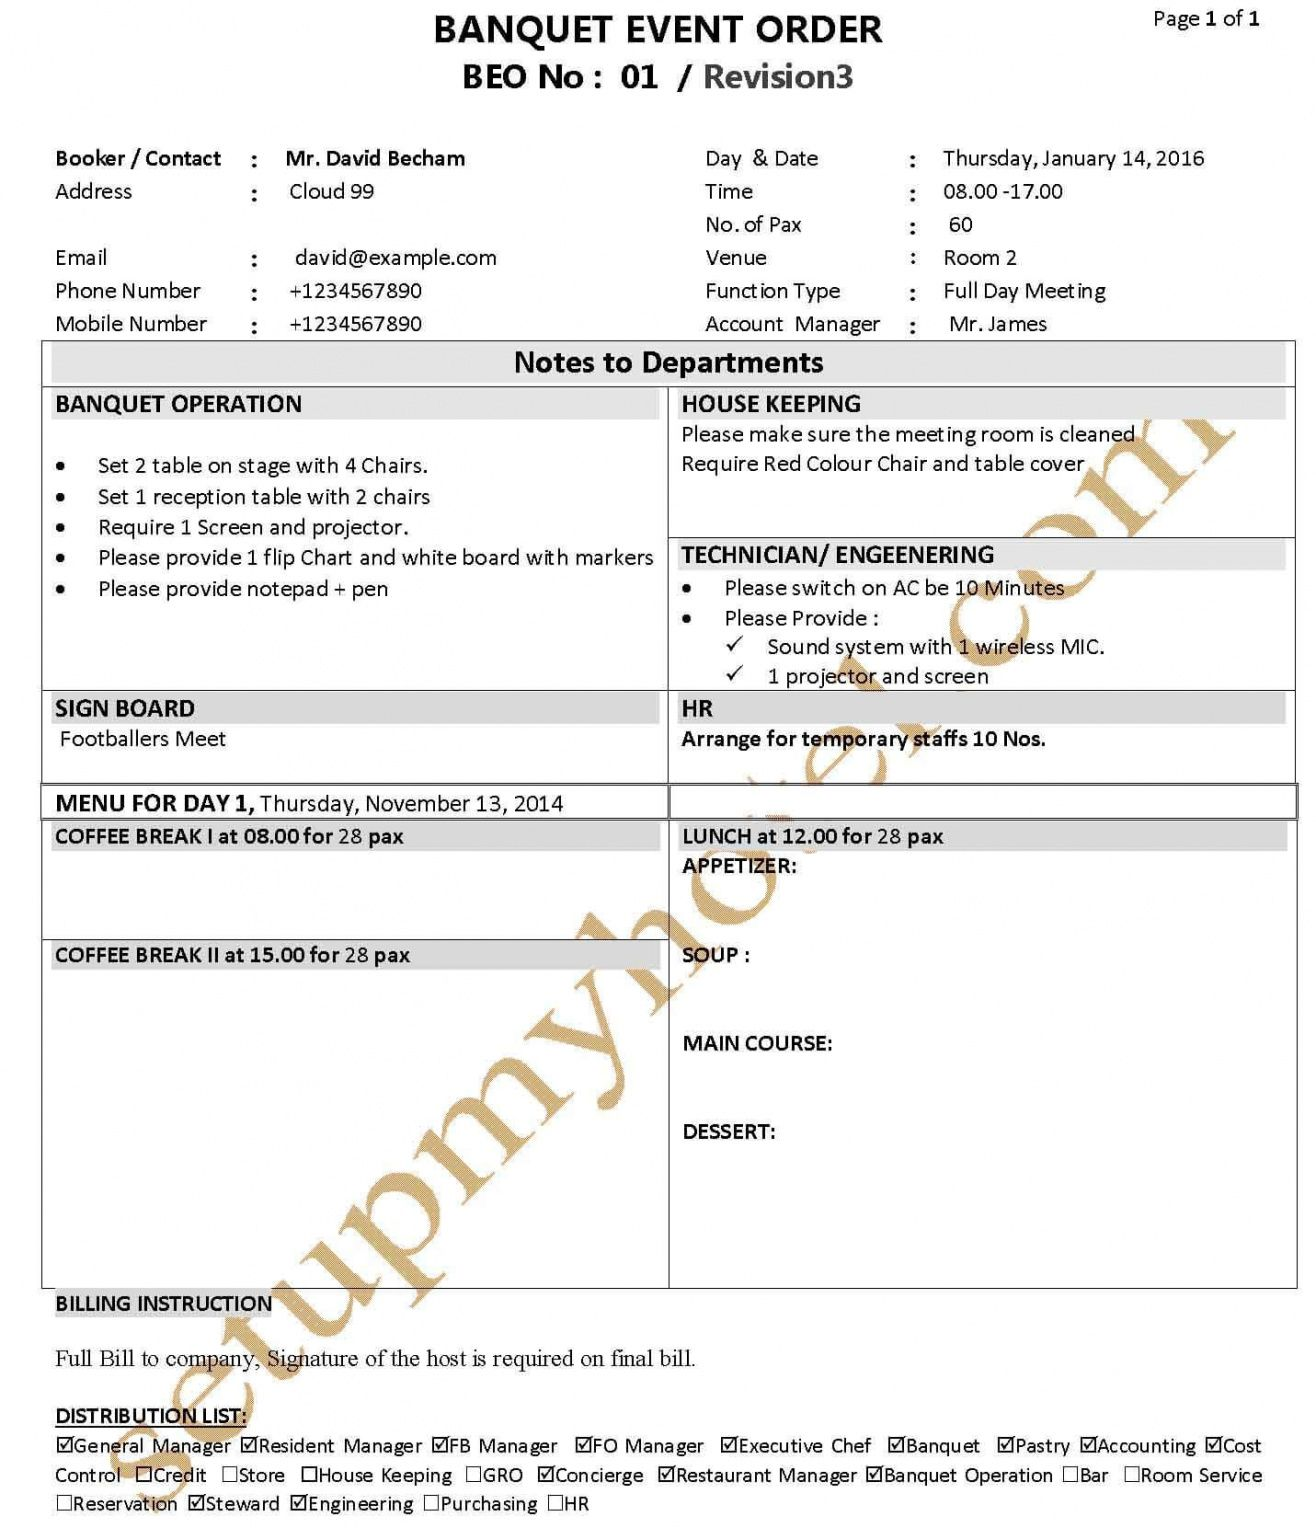 banquet function plan  event order form  fp  beo sample banquet event order template excel